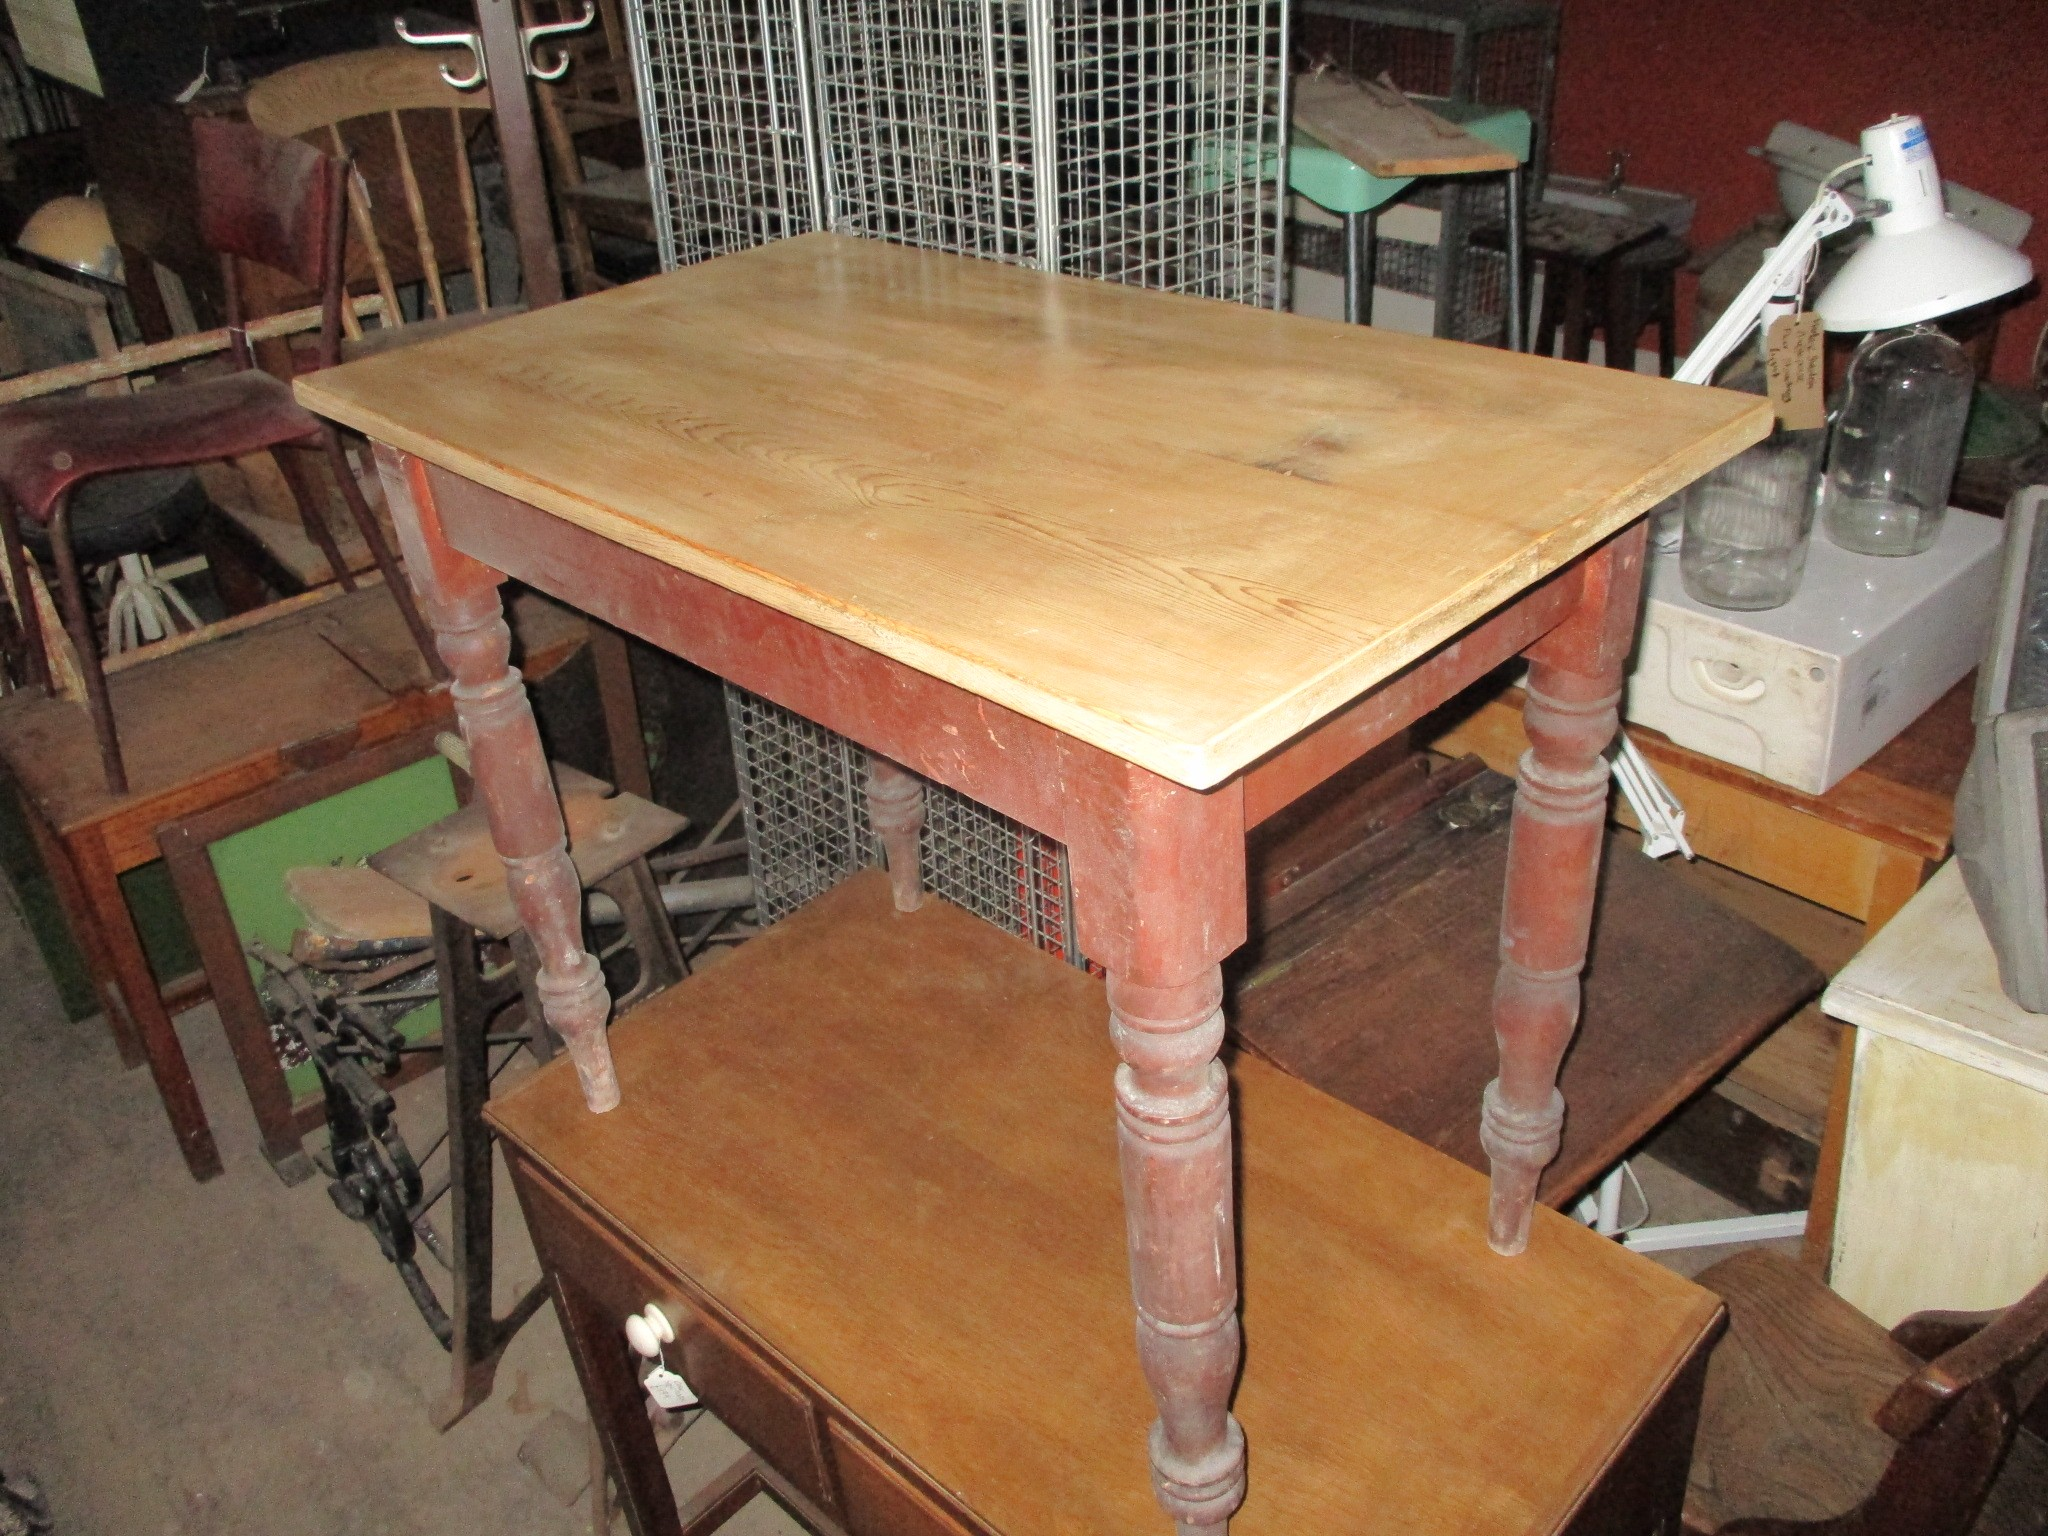 Table - refurbished period pine table 35